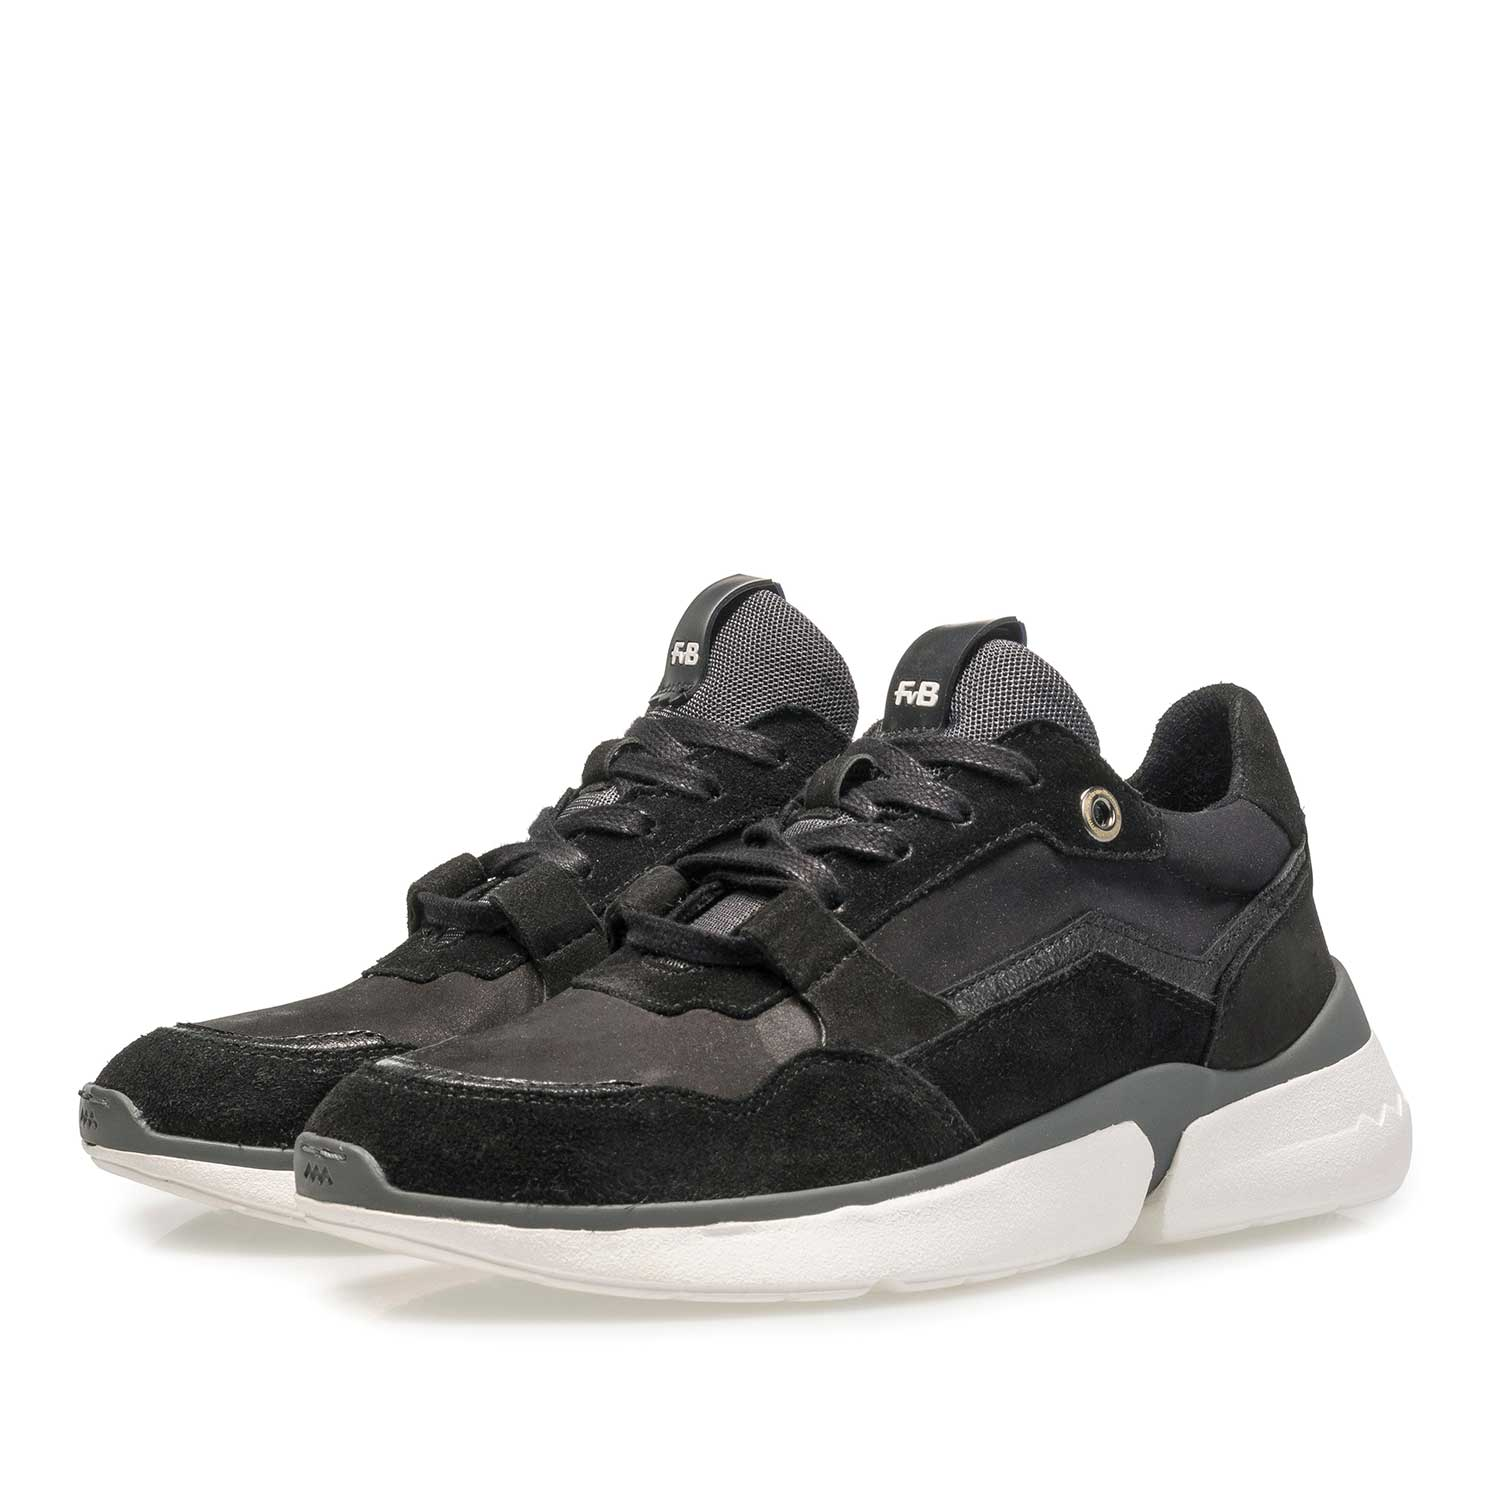 85291/04 - Black suede leather sneaker